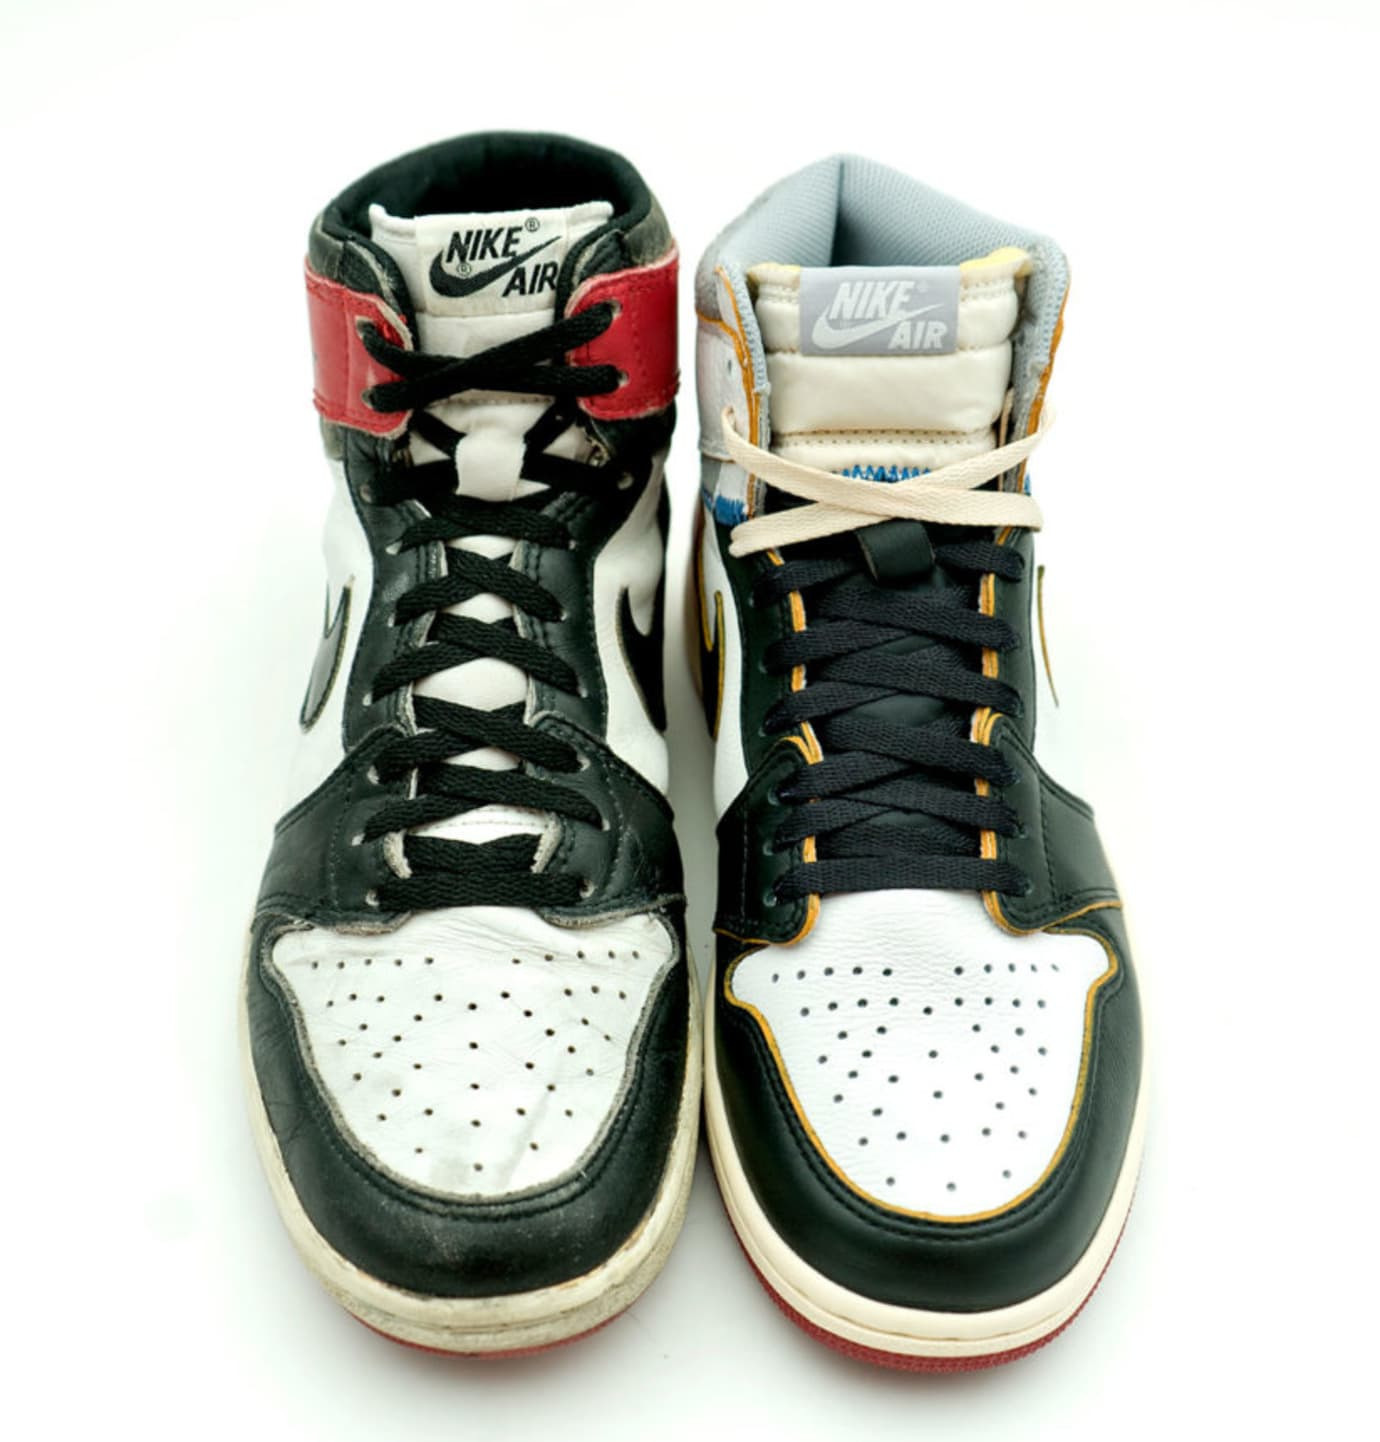 Union x Air Jordan 1 Comparison (vs. 'Black Toe')